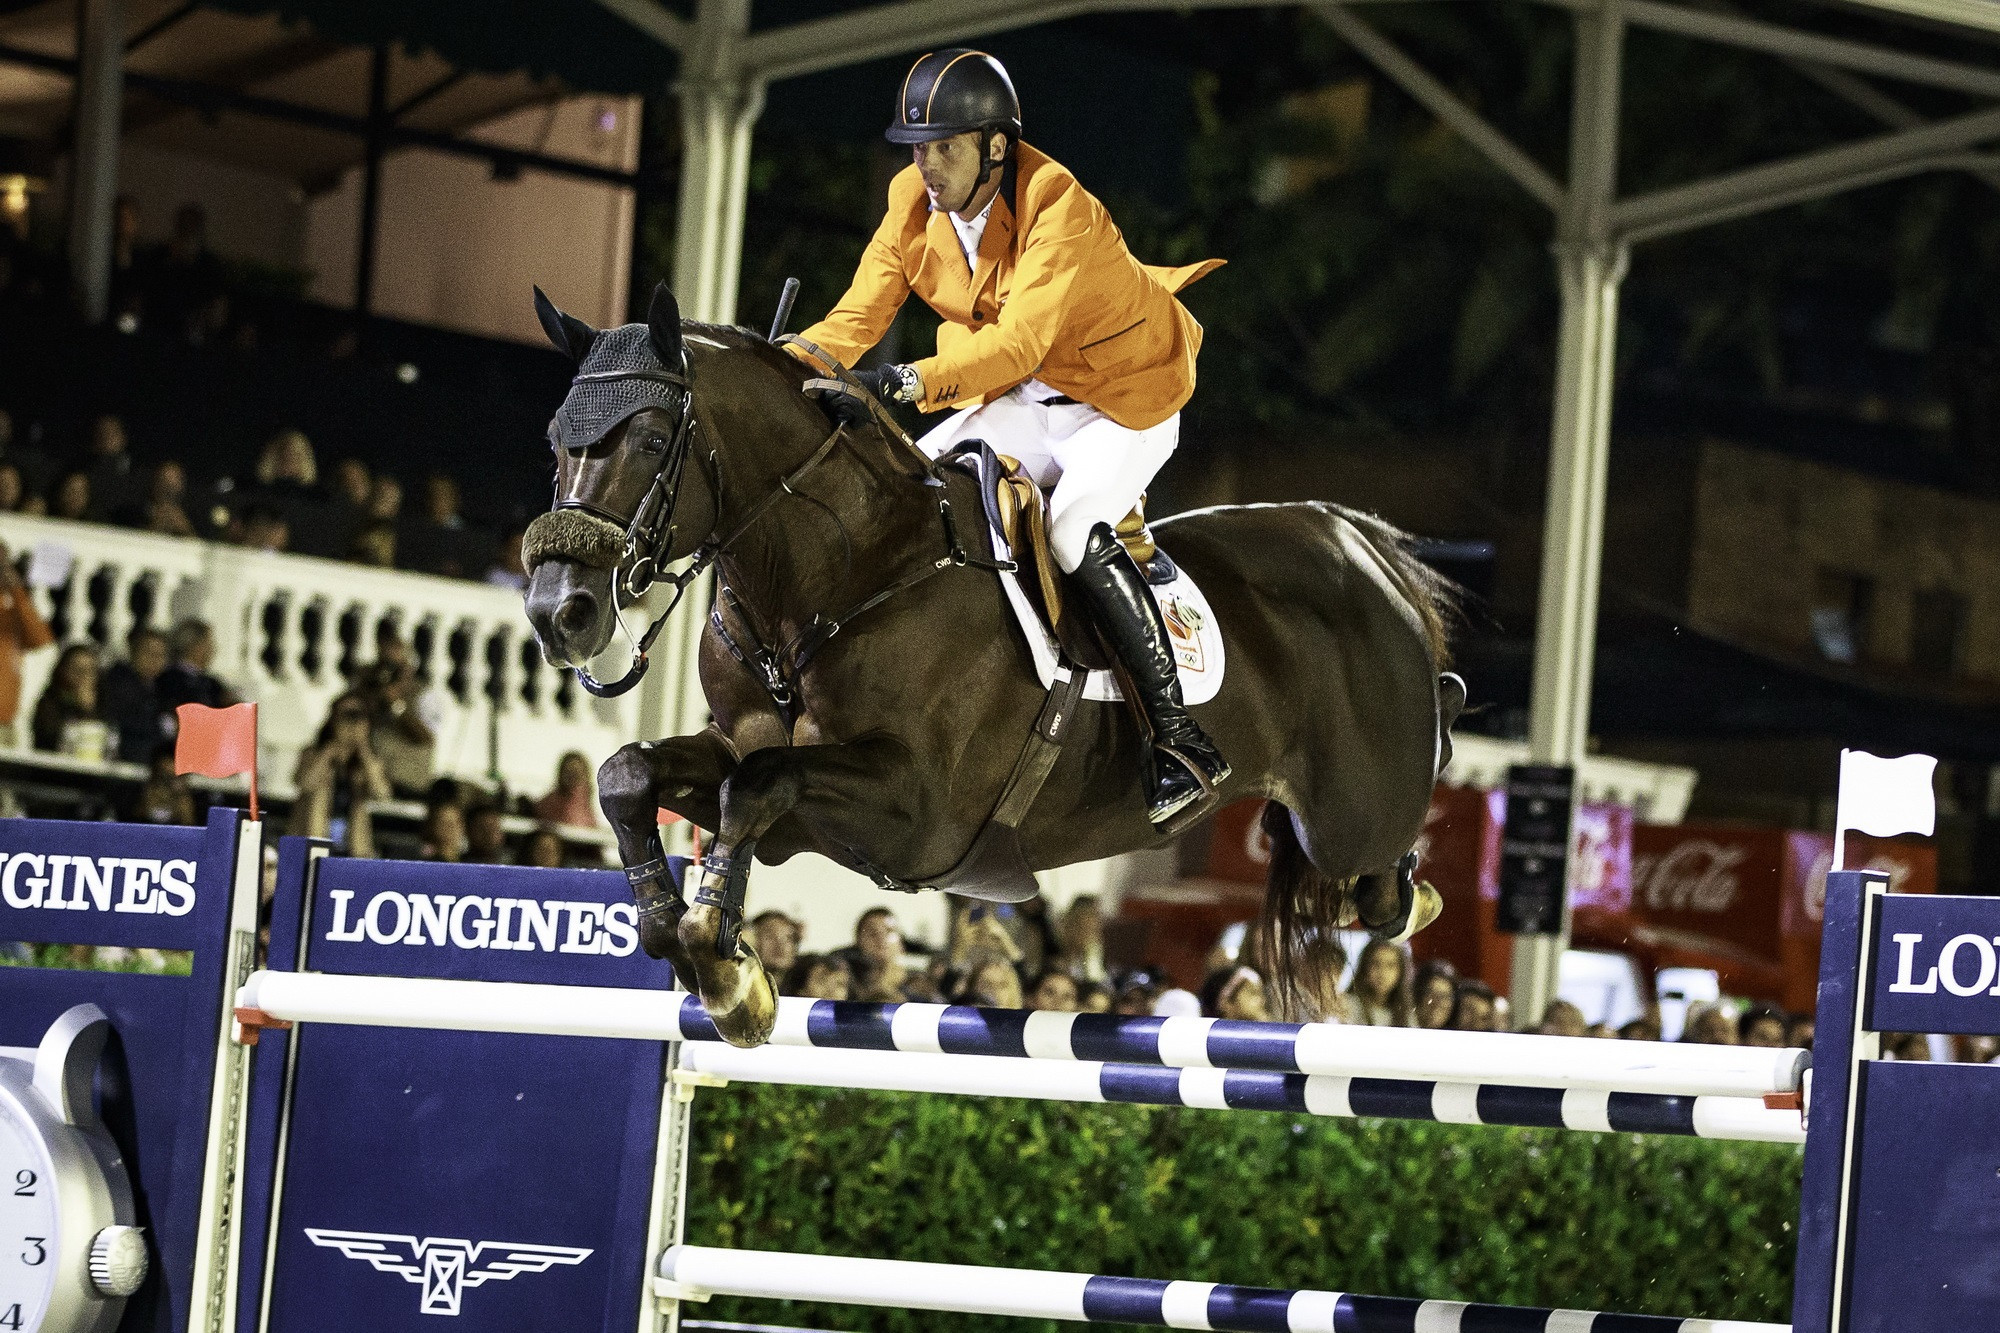 The Netherlands Harrie Smolders has been announced as the latest world number one ©FEI